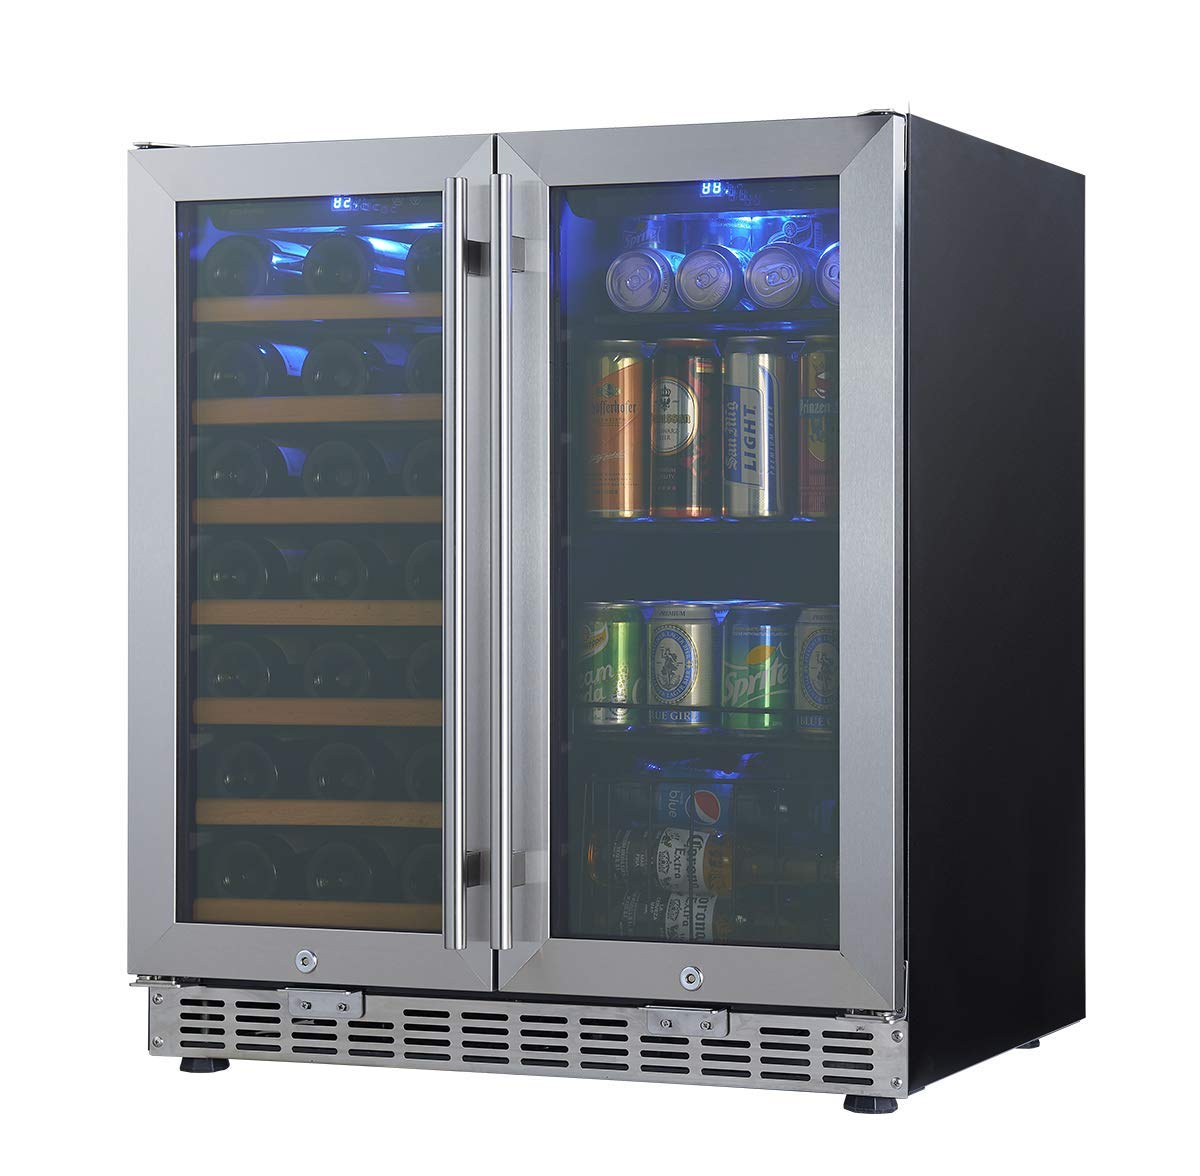 30'' Wine and Beer Cooler Combo | 30 Inch Wide Under Counter Beverage and Wine Refrigerator combination, built in or freestanding